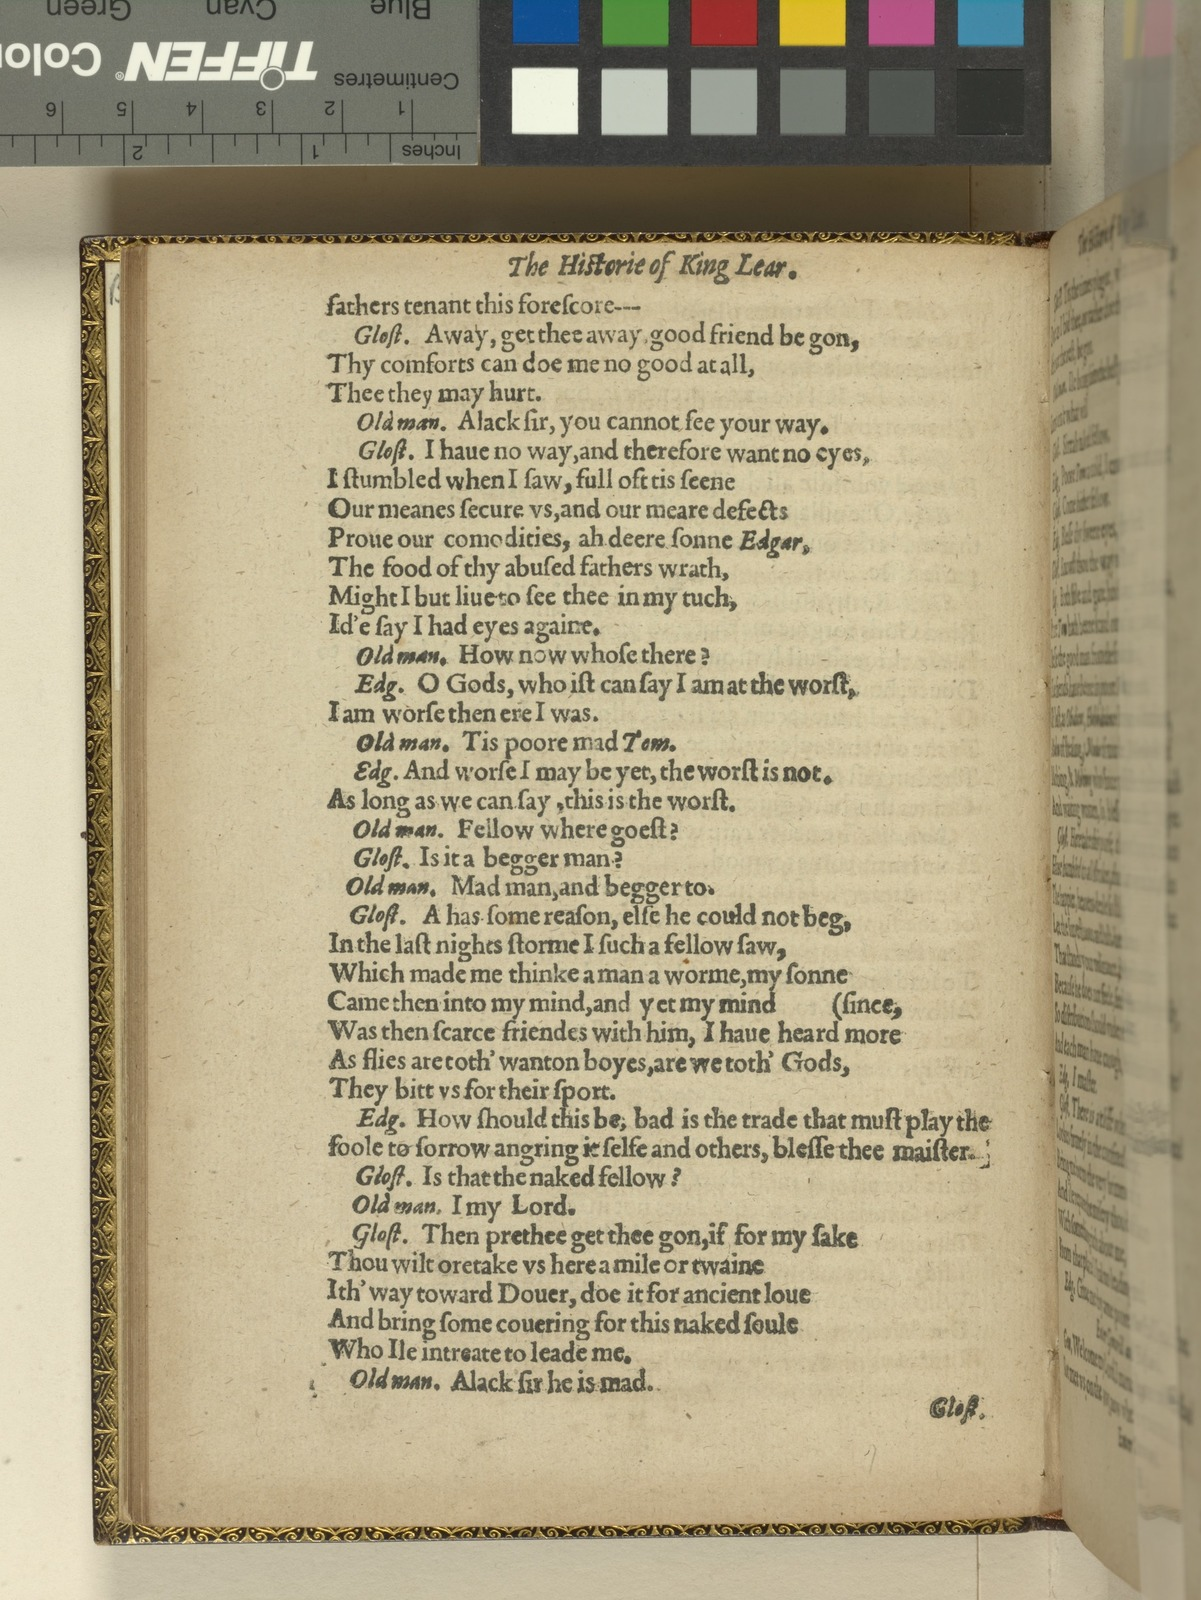 The Historie of King Lear. Shakespeare, William (1564-1616)